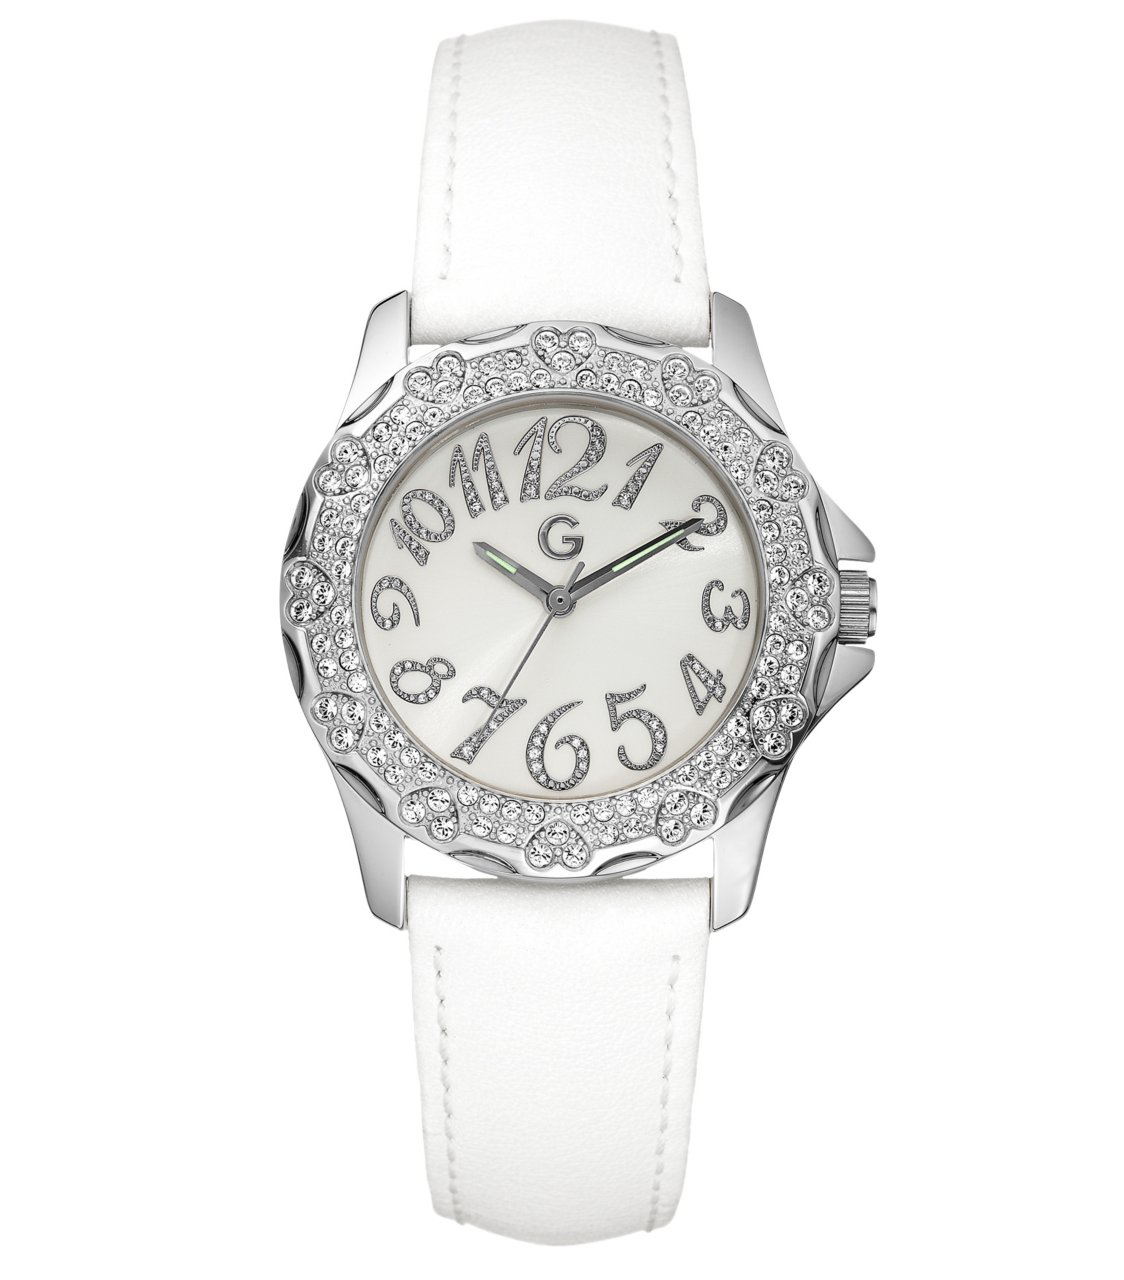 G by GUESS White Stone Heart Watch